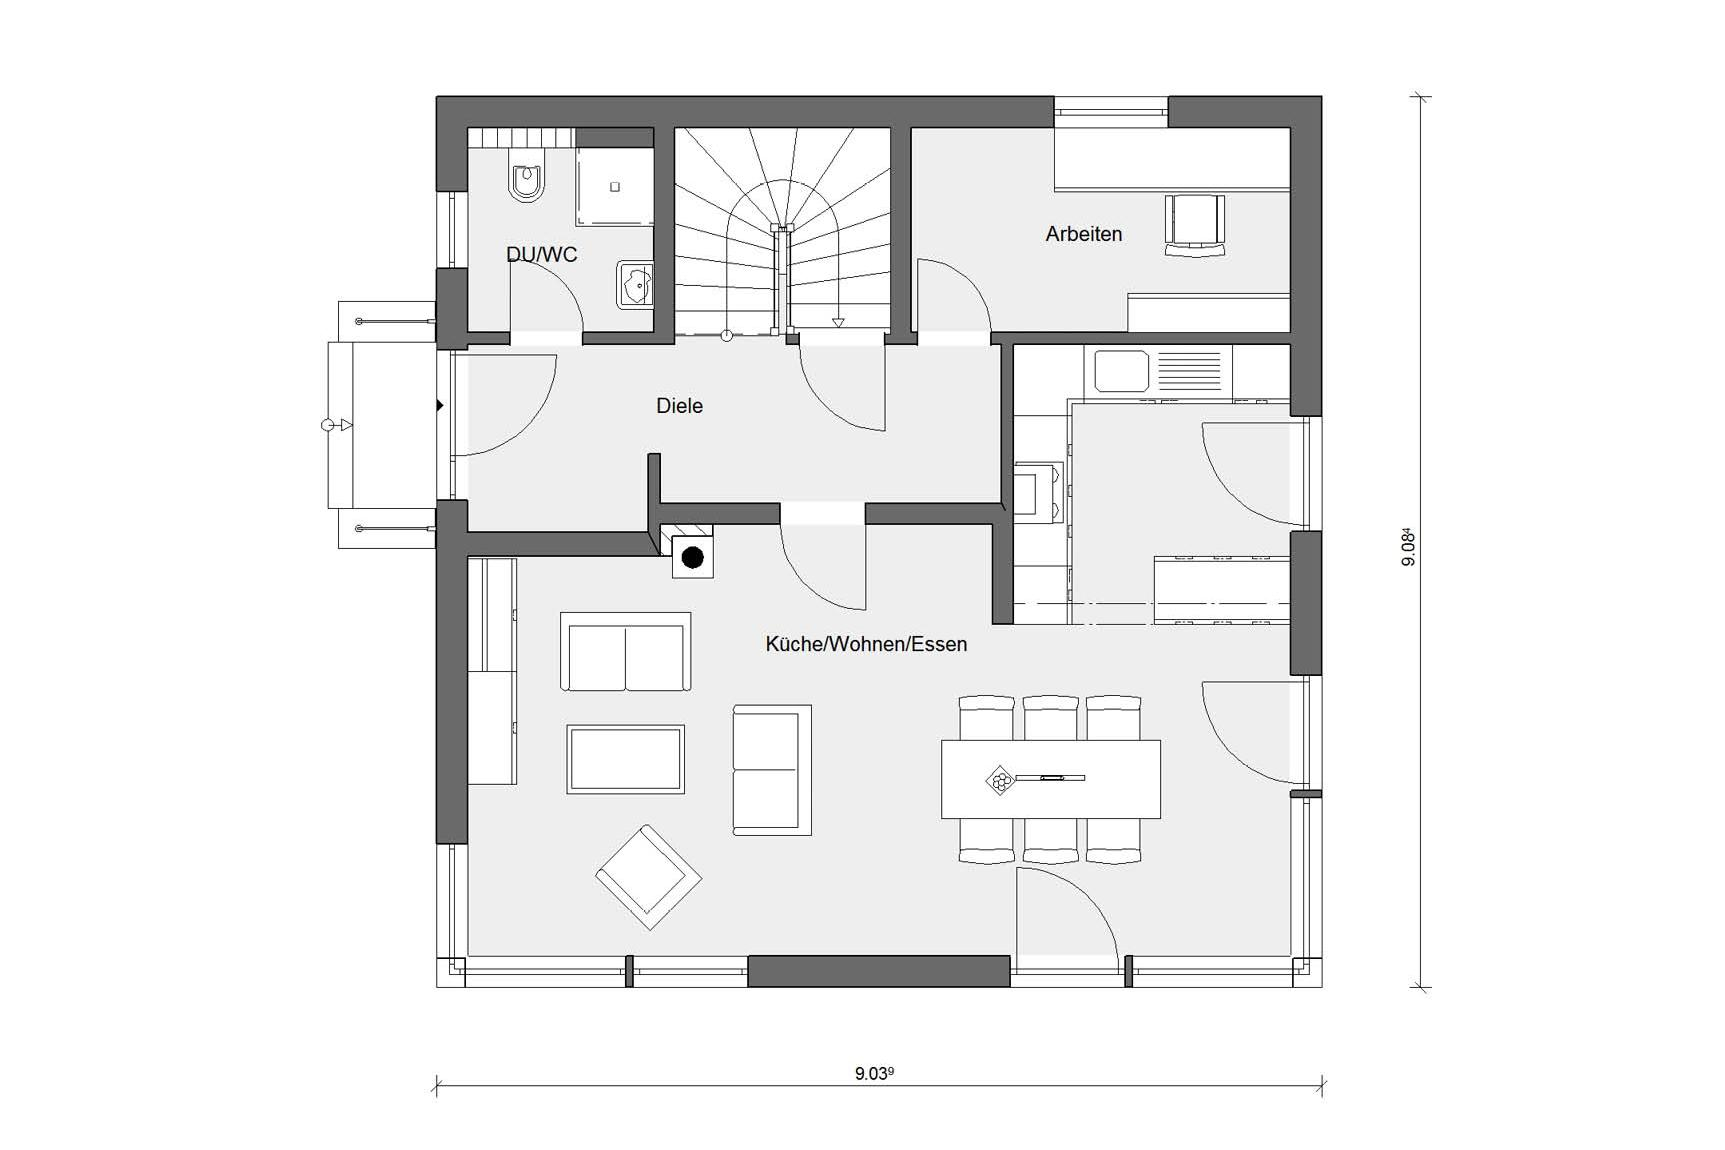 Floor plan ground floor prefabricated house with tent roof E 20-135.1